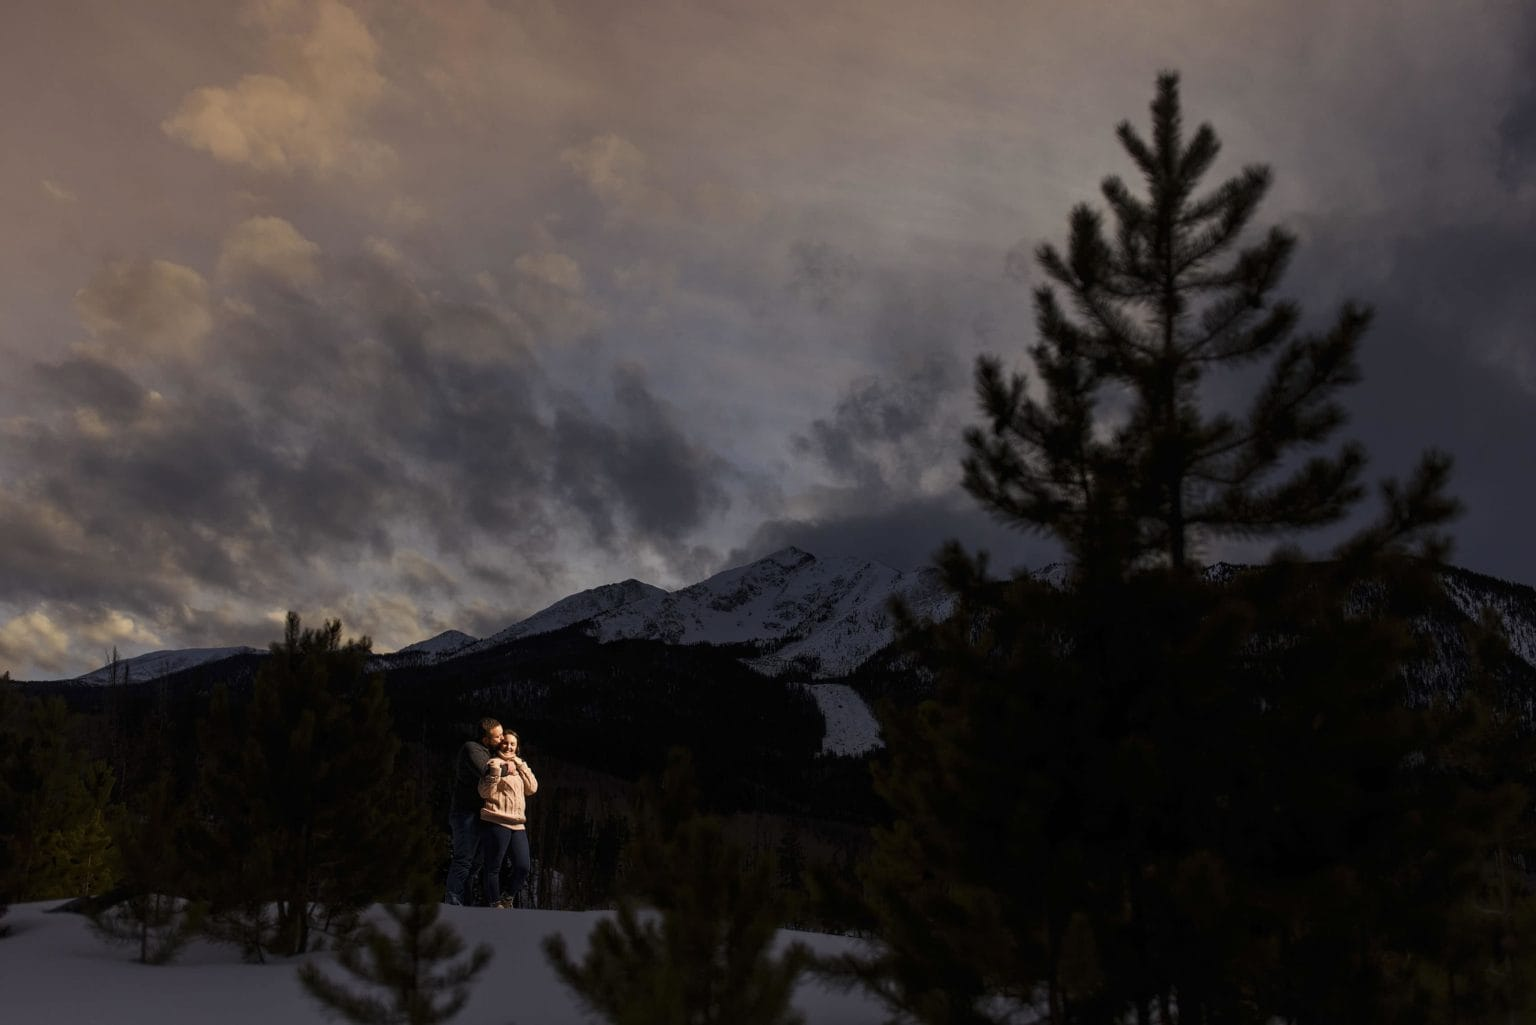 Nick kisses Bethany as the sun sets over Peak 1 in the Tenmile Range in Frisco during their engagement photos